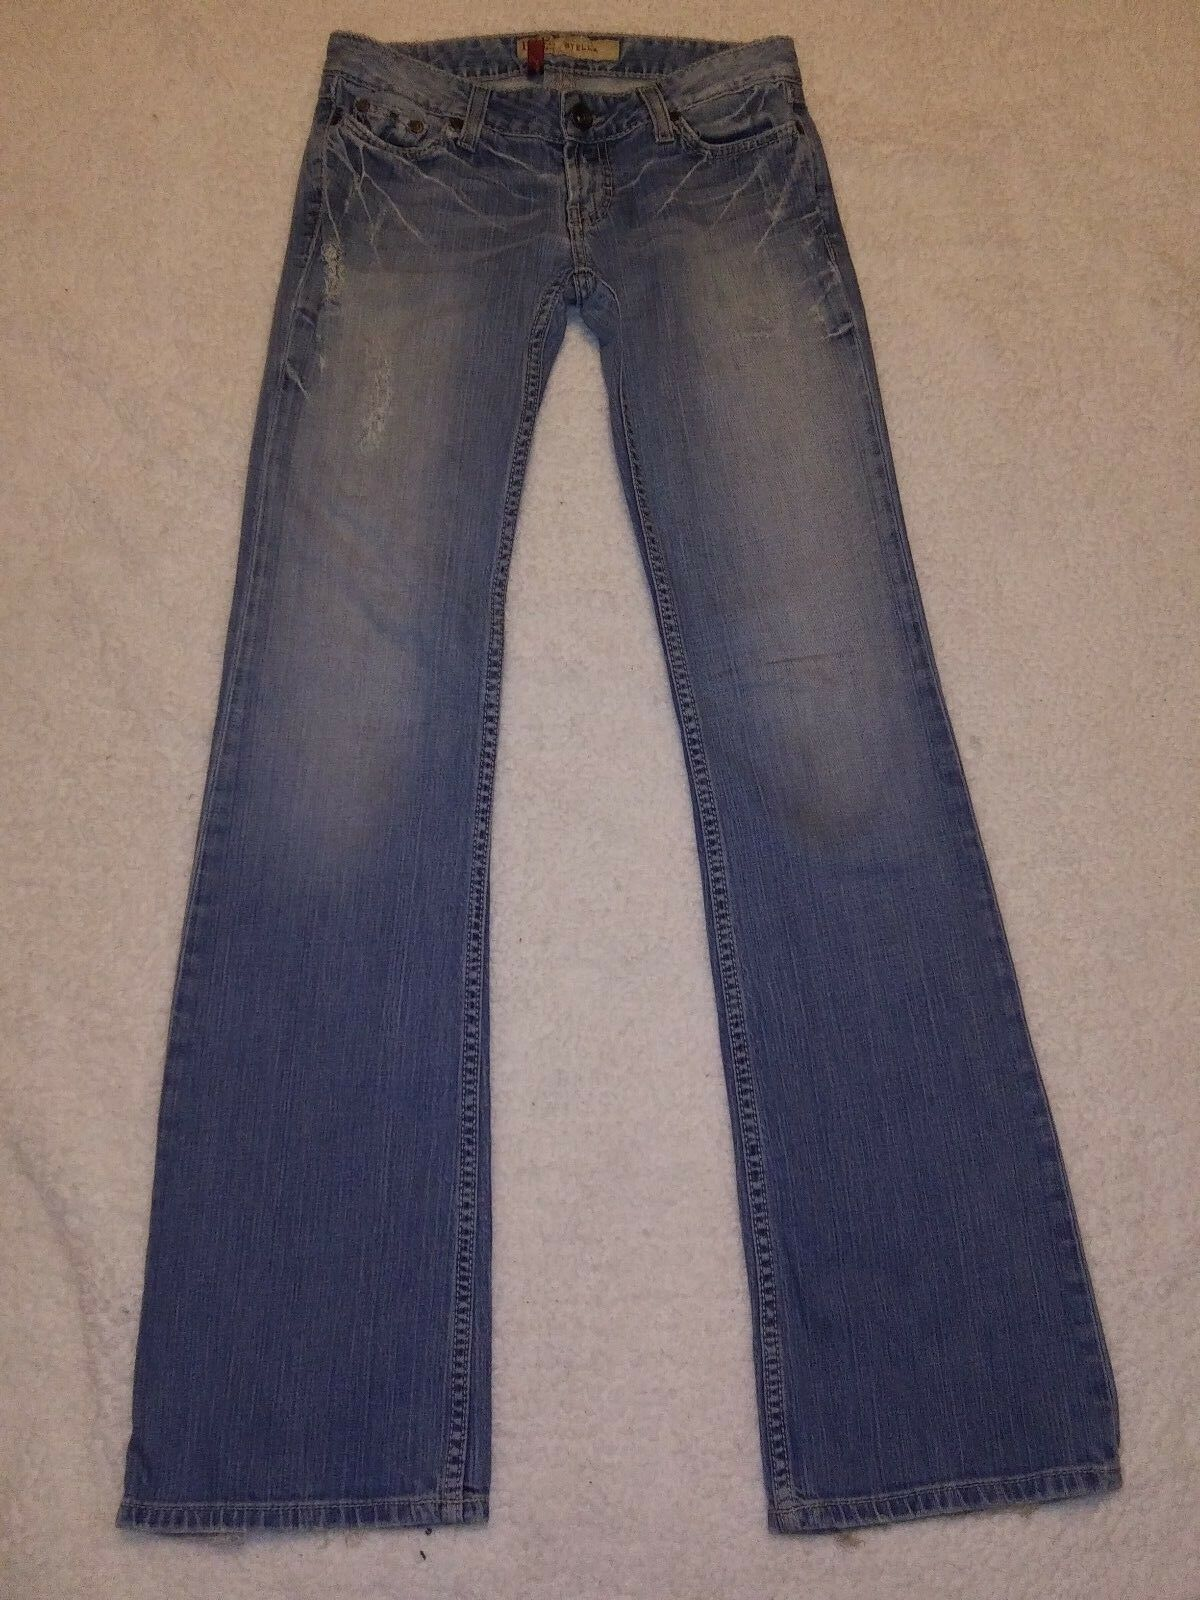 BKE Stella Denim Stretch Jeans Women's Size 26x30 1 2